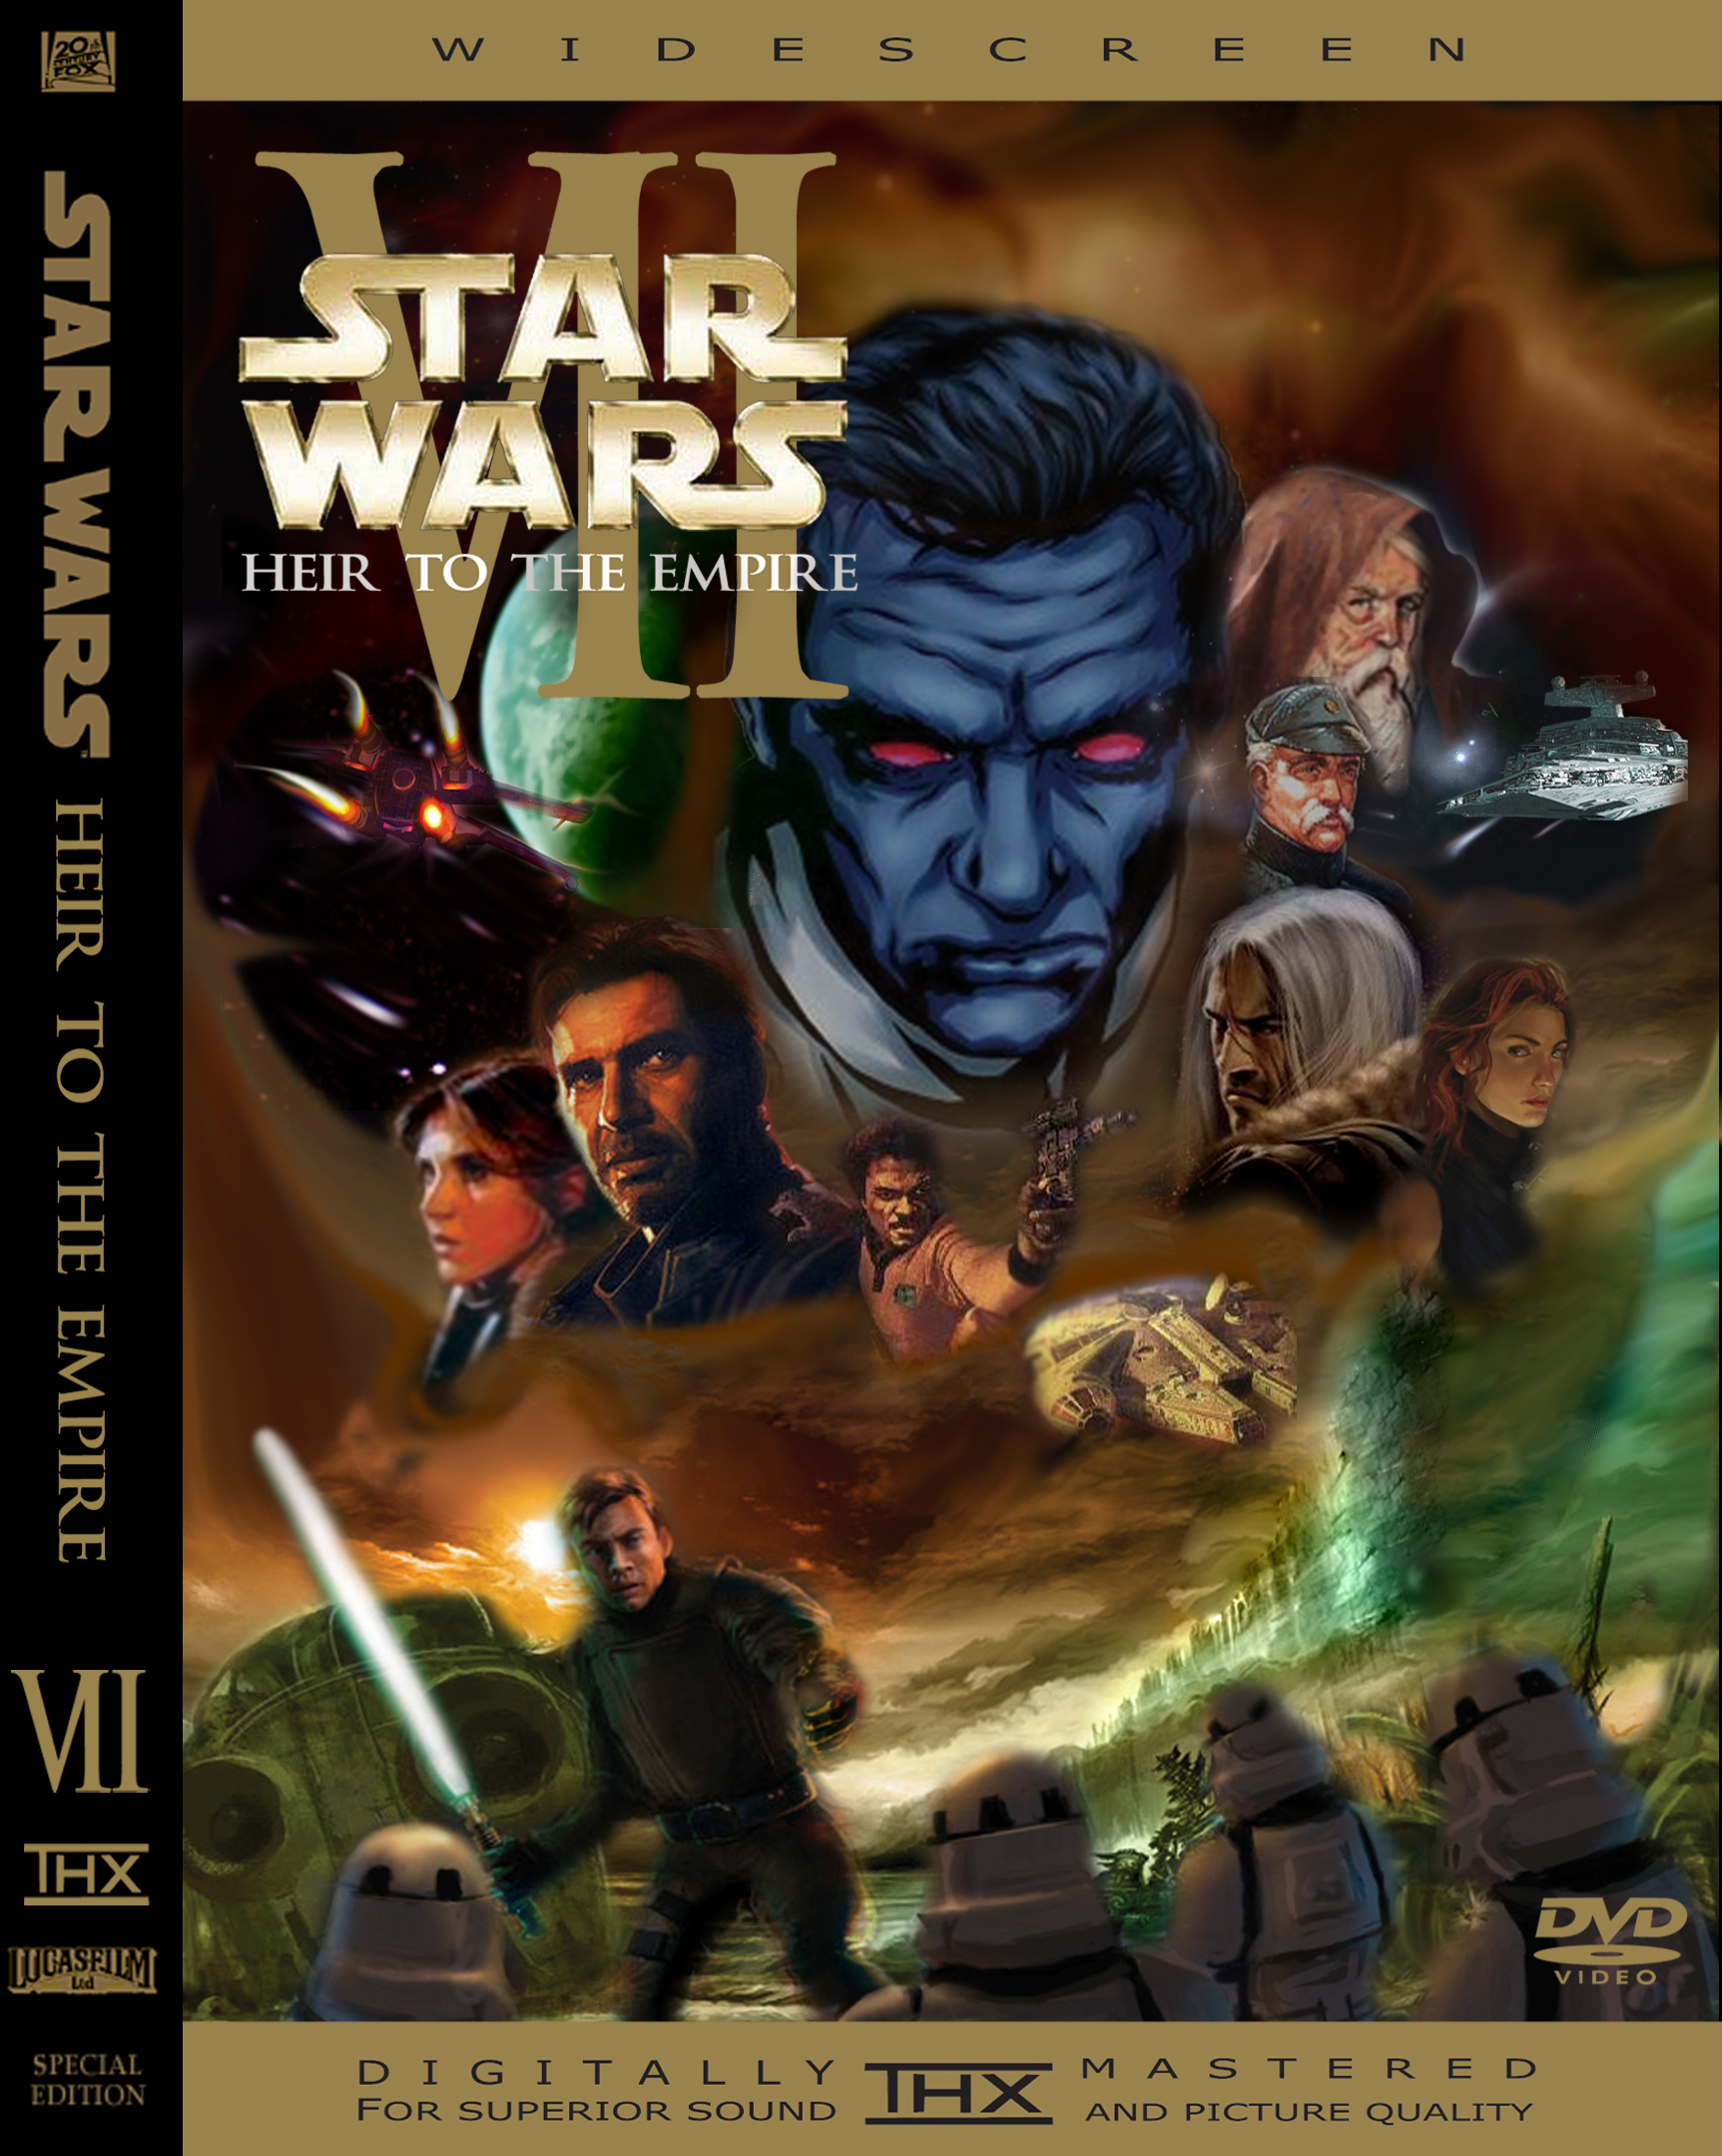 Star_Wars_Episode_VII_DVD_Case_by_Scande